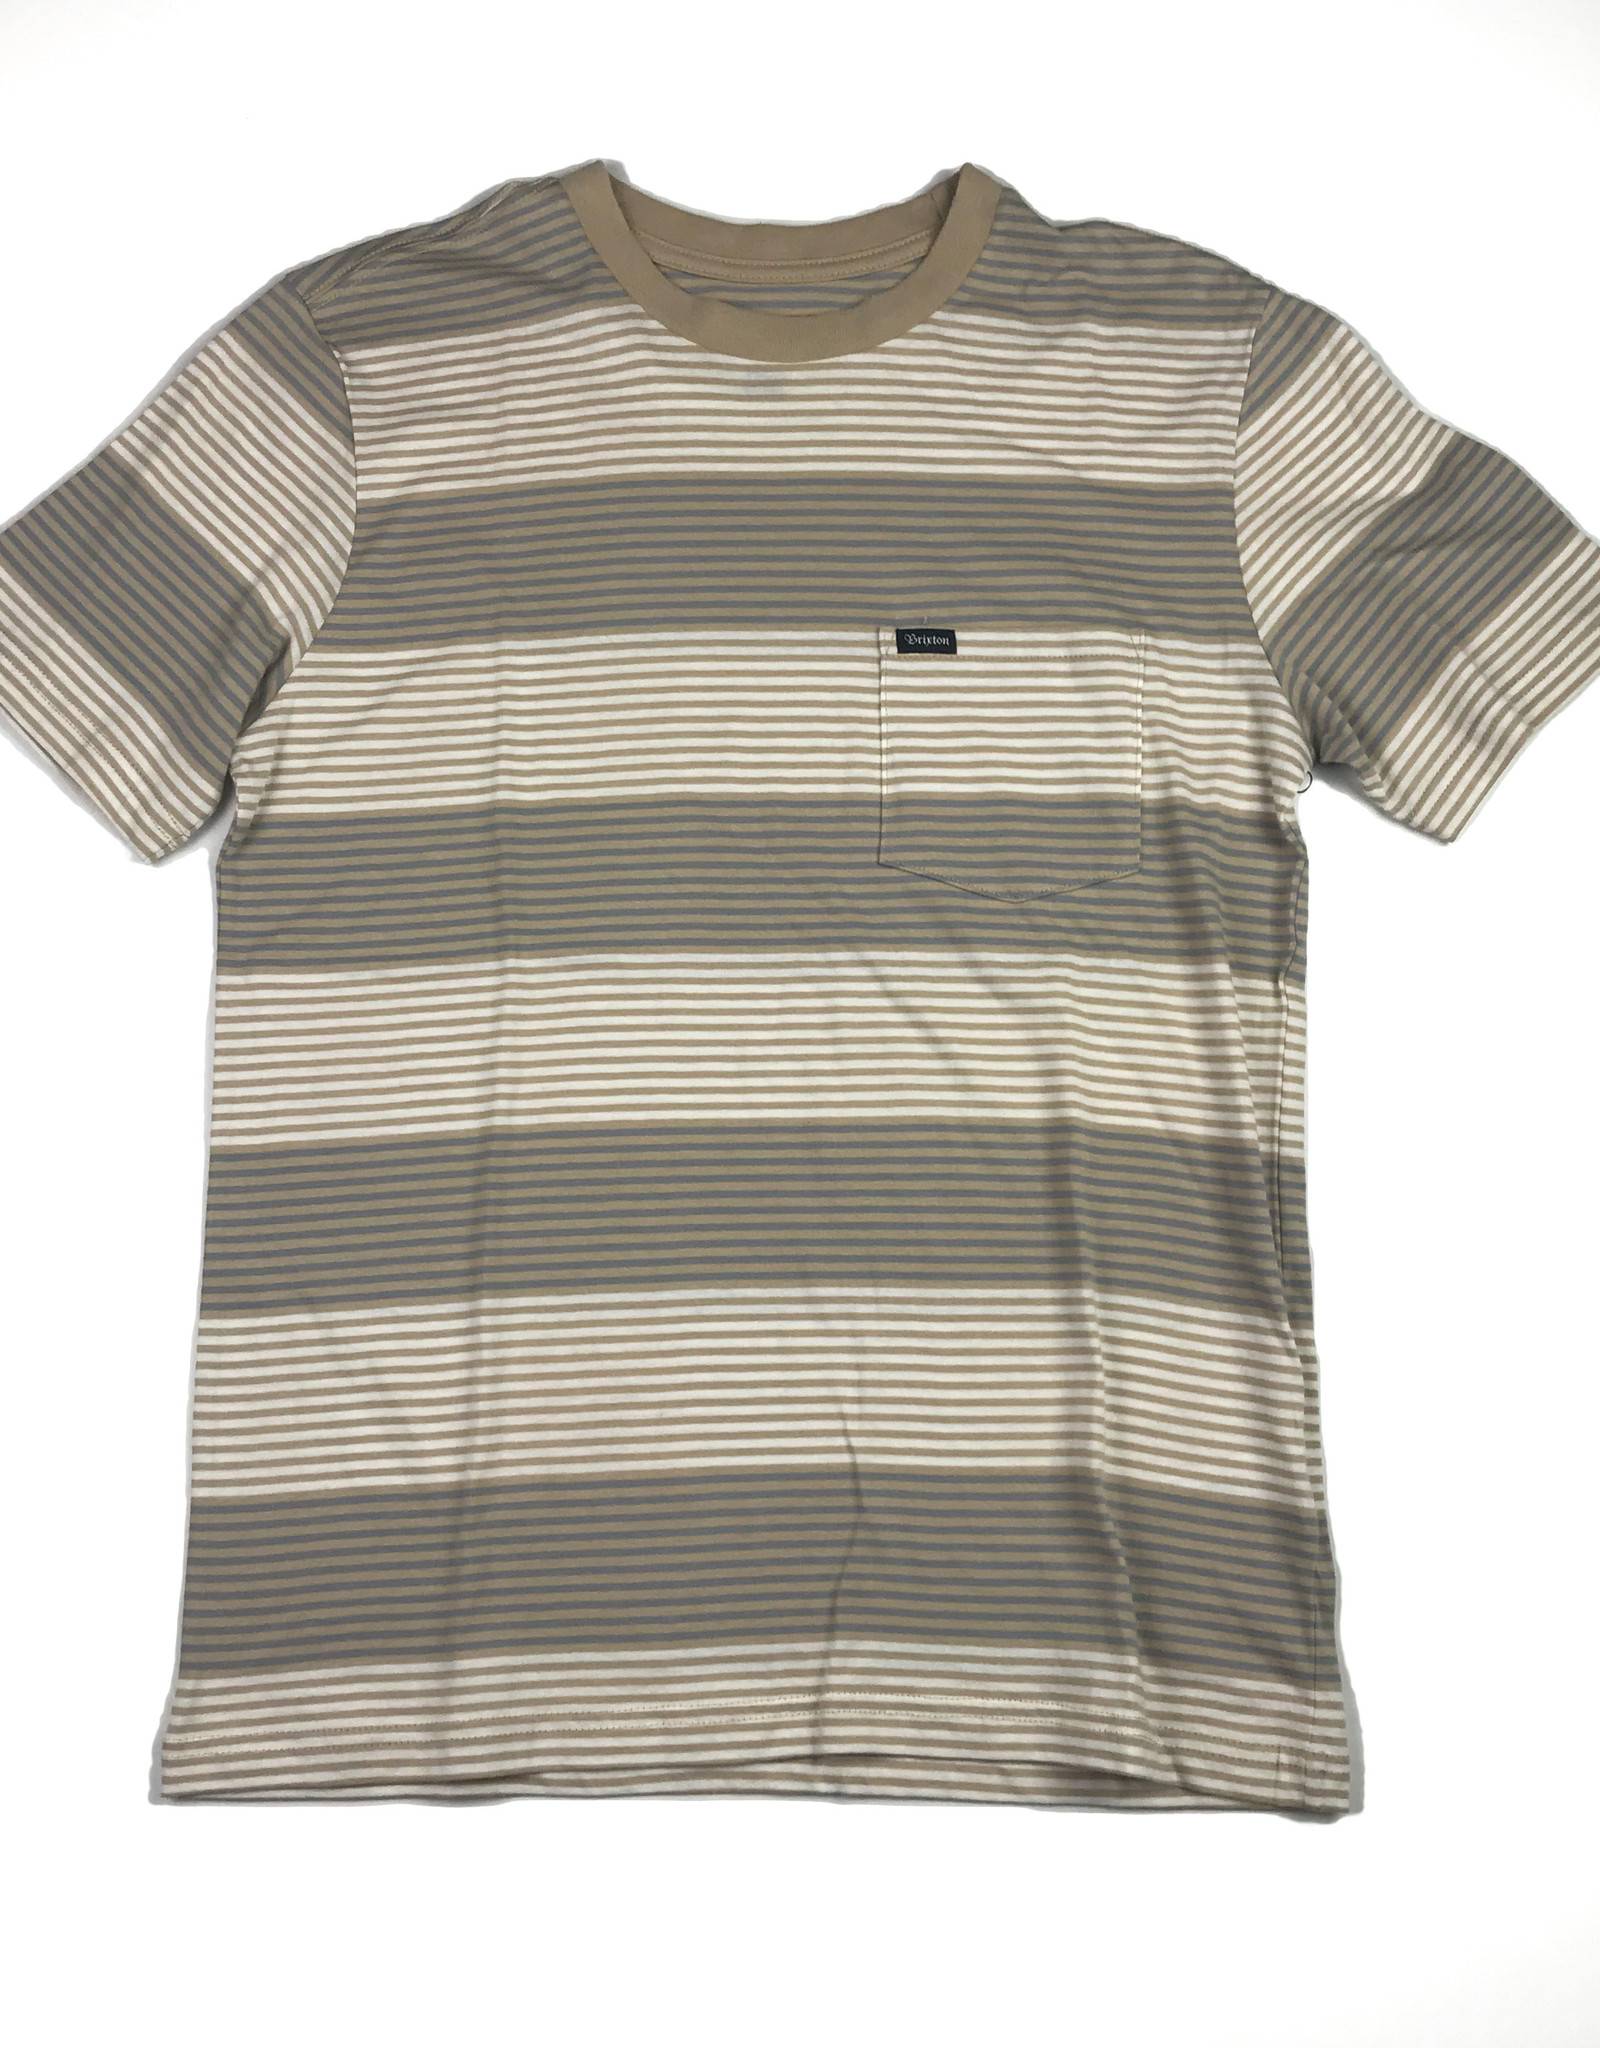 BRIXTON BRIXTON HILT S/S KNIT TEE - (ALL COLORS)